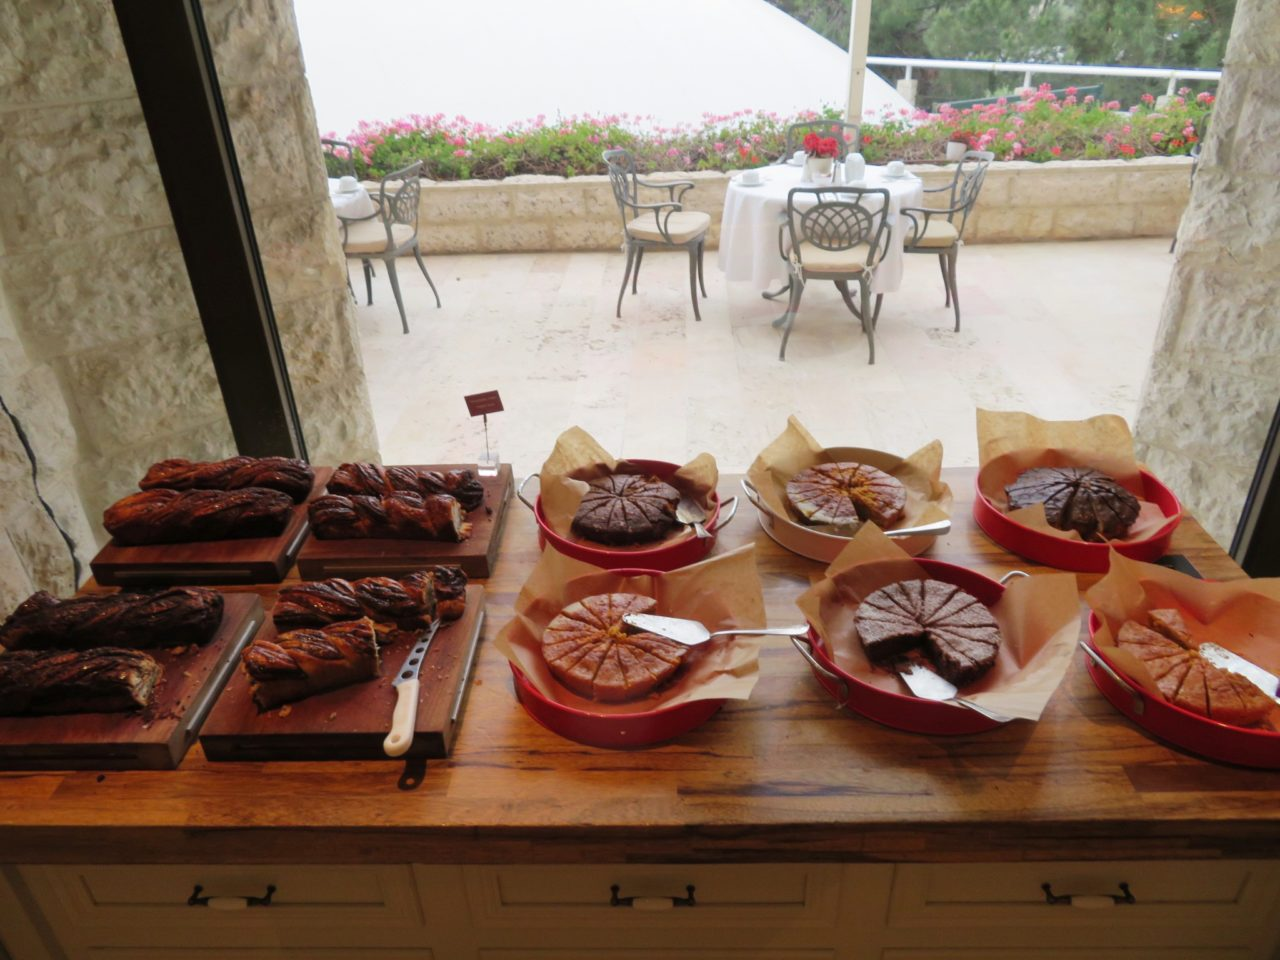 Vacationing in Israel ... Breakfast cakes at the Inbal Hotel in Jerusalem